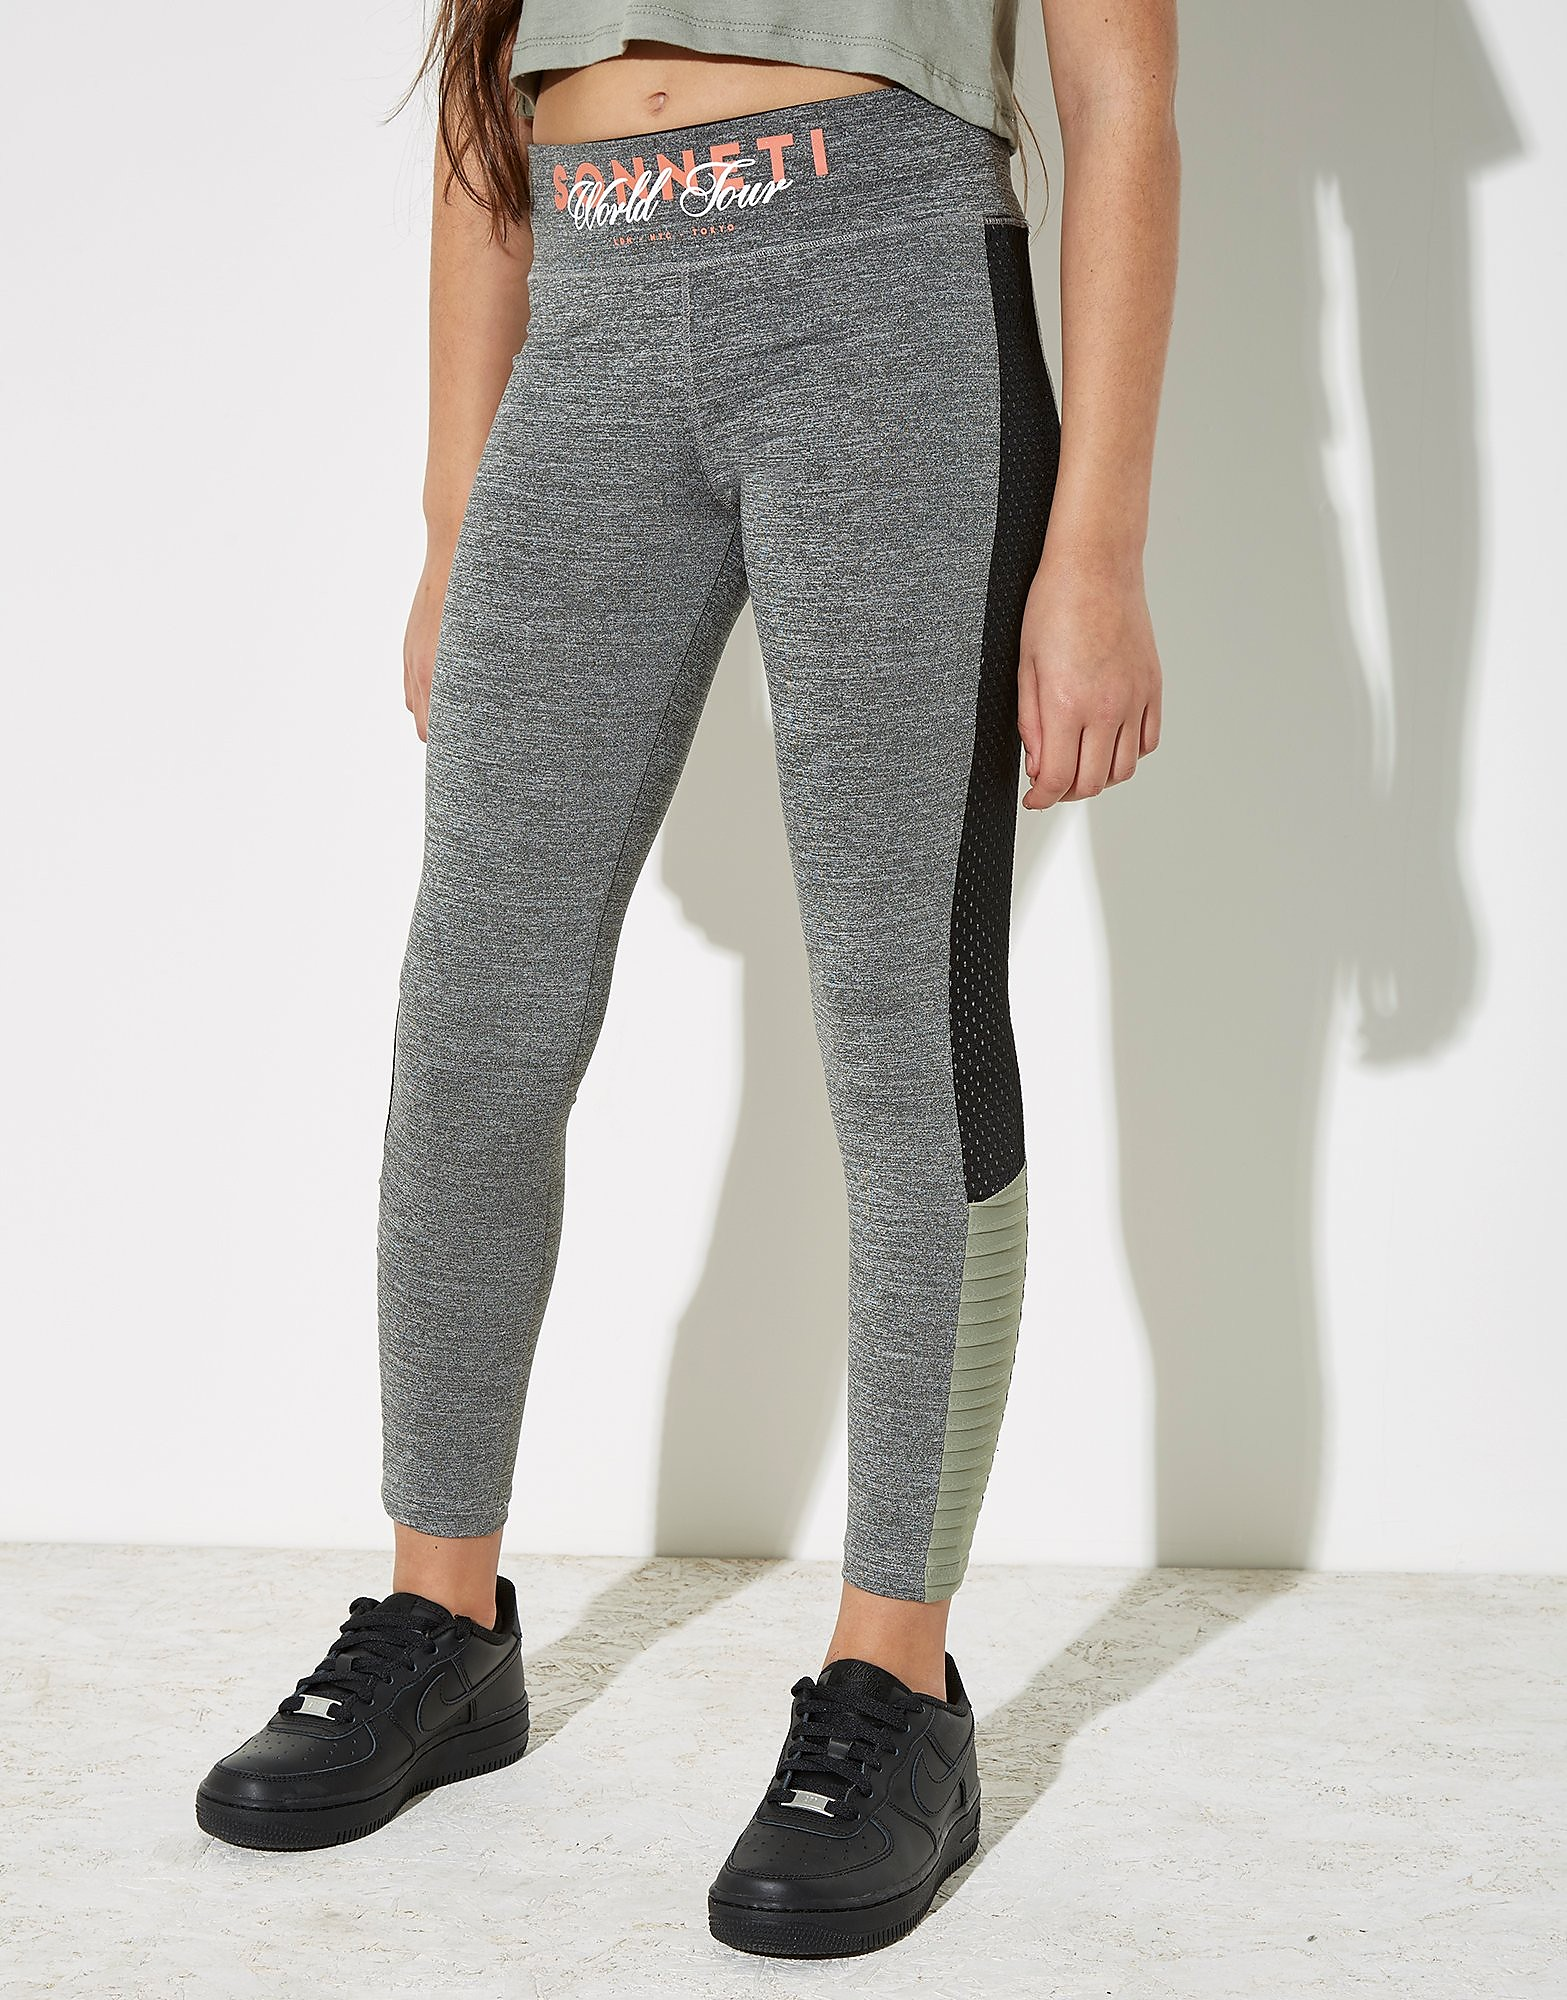 Sonneti Legging Girls' Racer Panel Junior